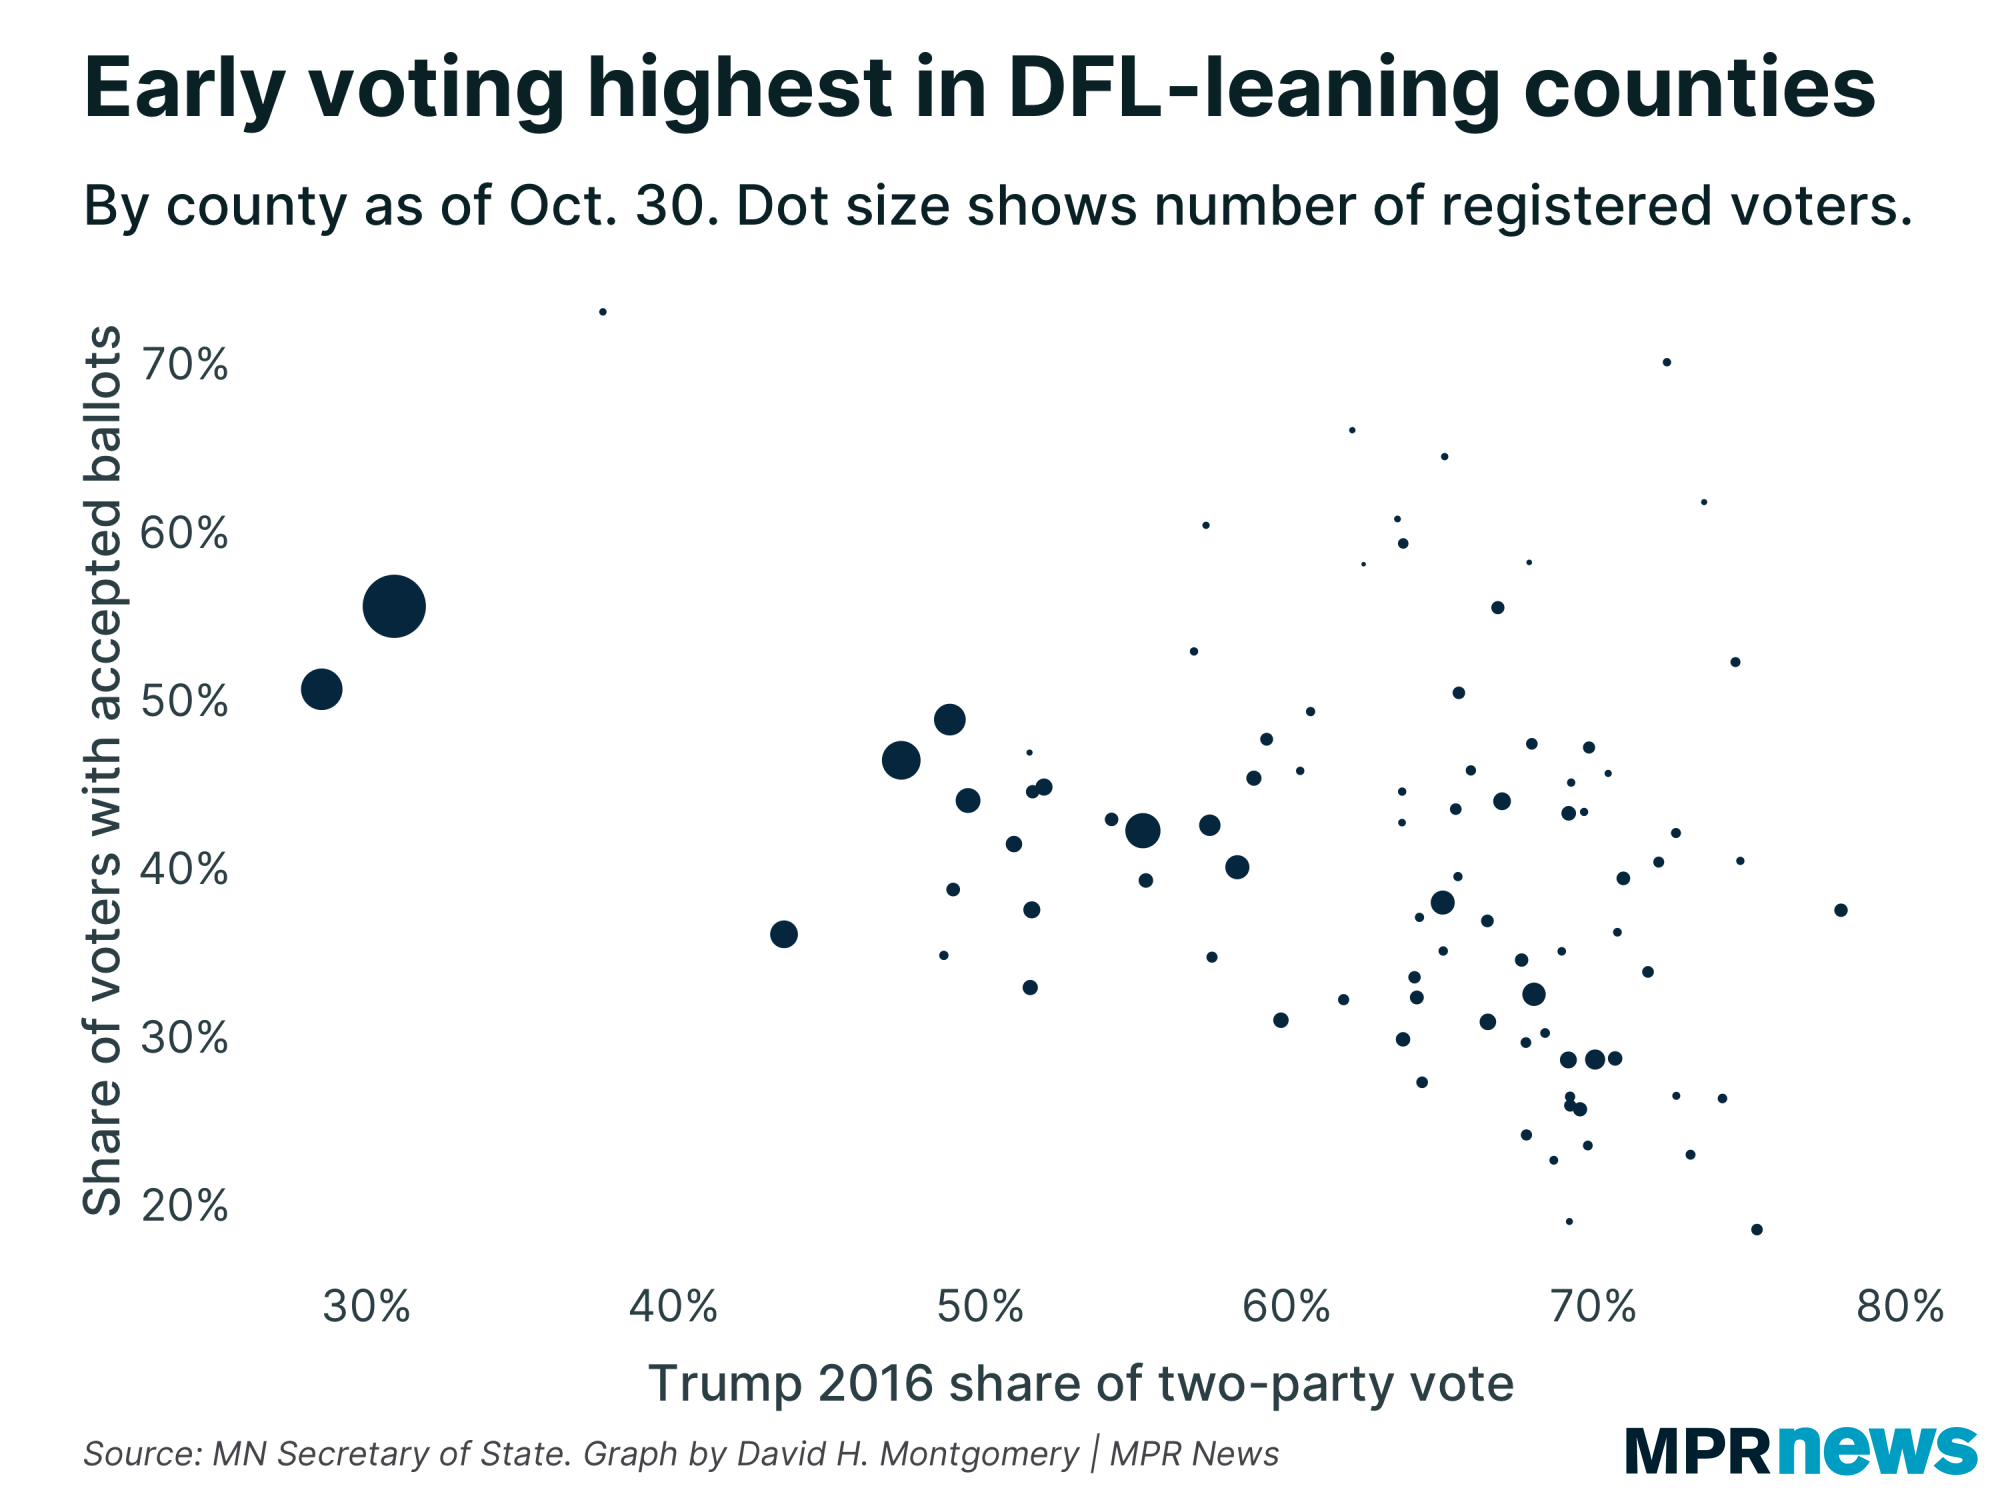 Early voting is highest in DFL-leaning counties